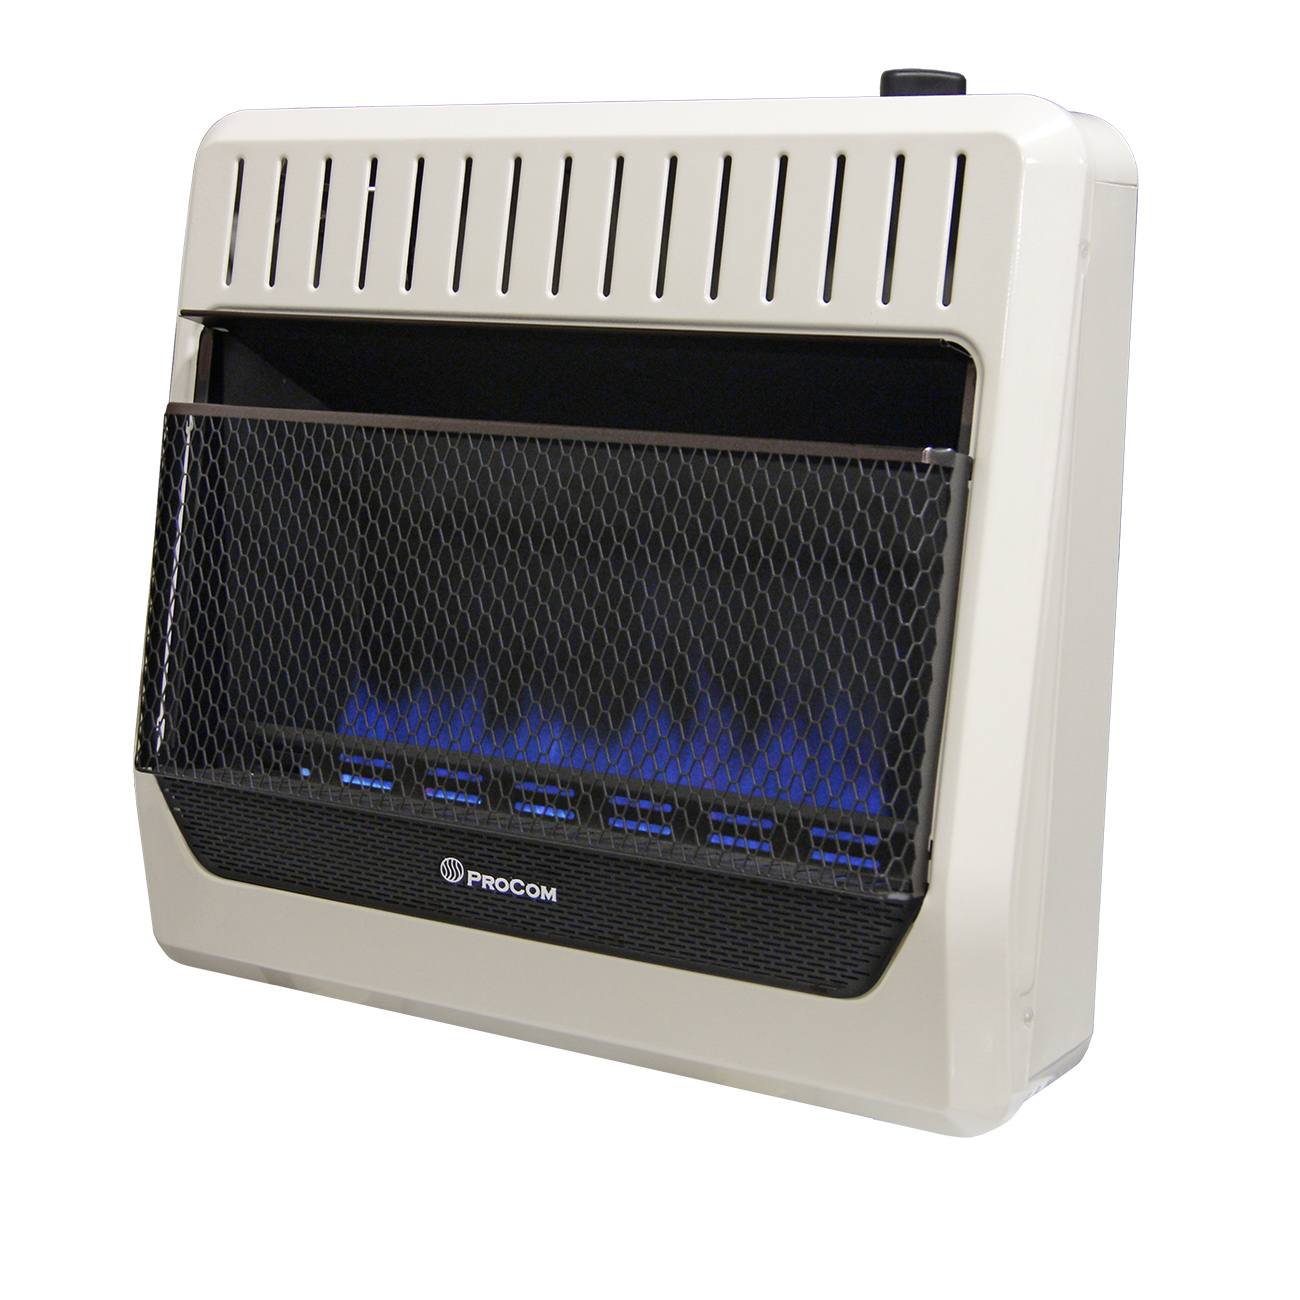 Garage Heater With Wall Thermostat Ventless Dual Fuel Blue Flame Wall Heater Thermostat Control 30 000 Btu